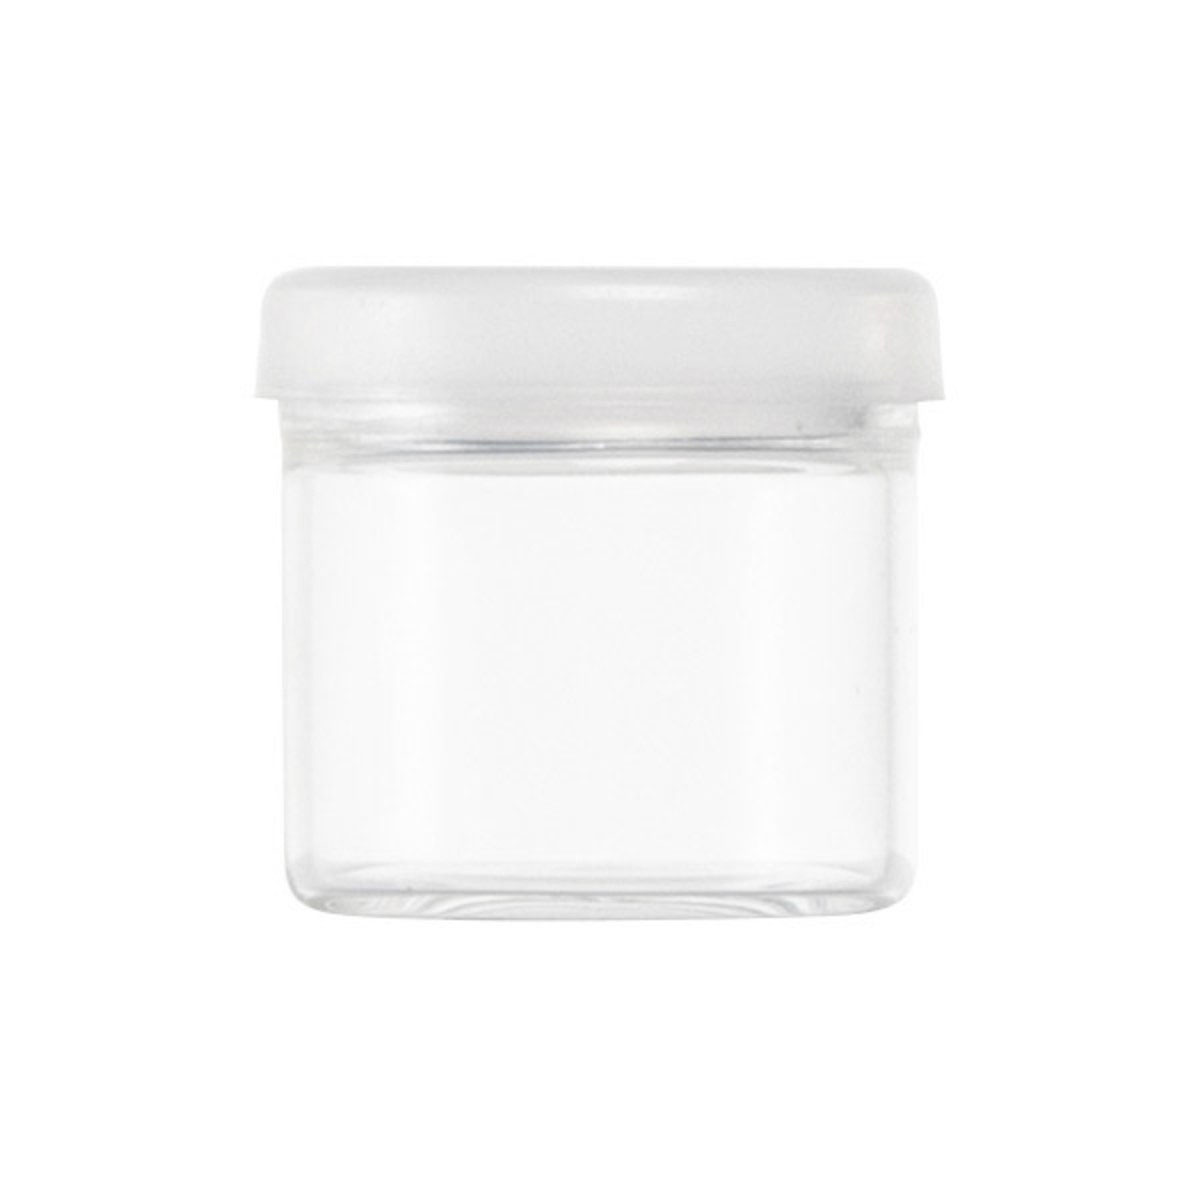 6ml Glass No Neck Concentrate Container Clear Silicone Cap (1008 Qty.)